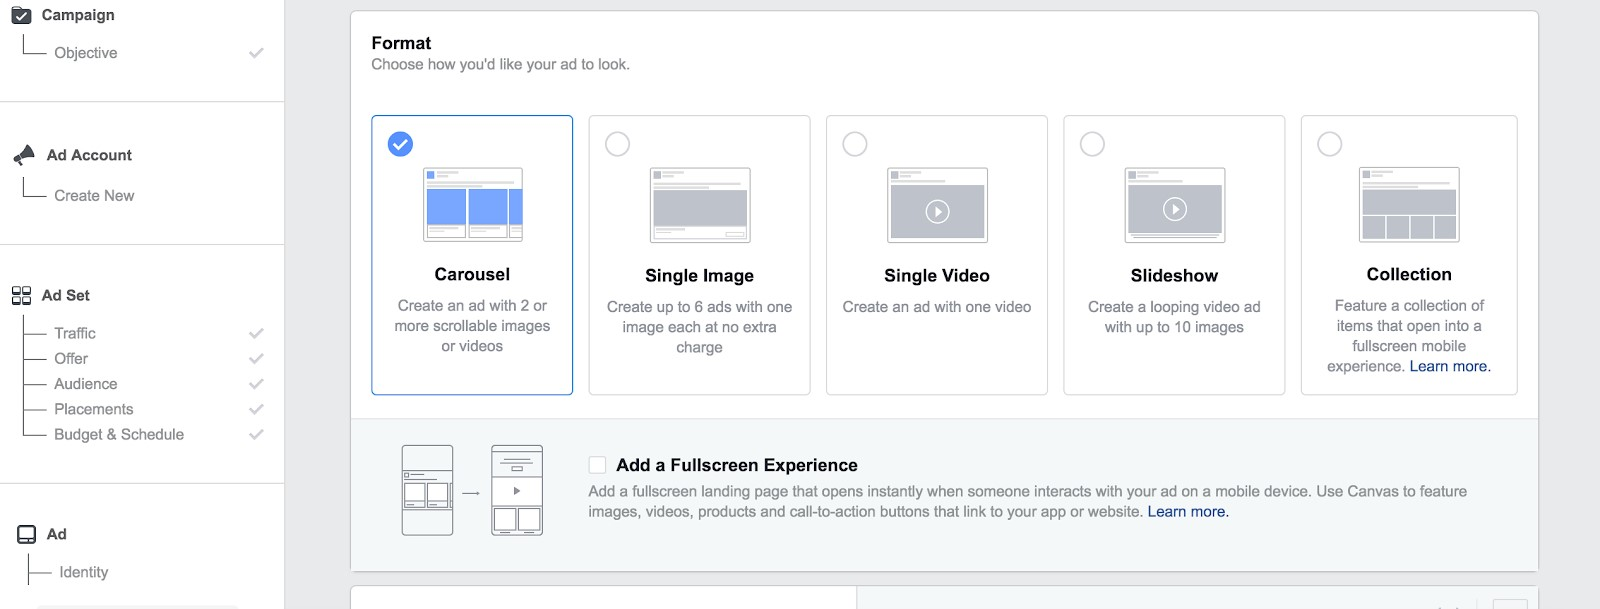 Facebook Advertising Made Easy